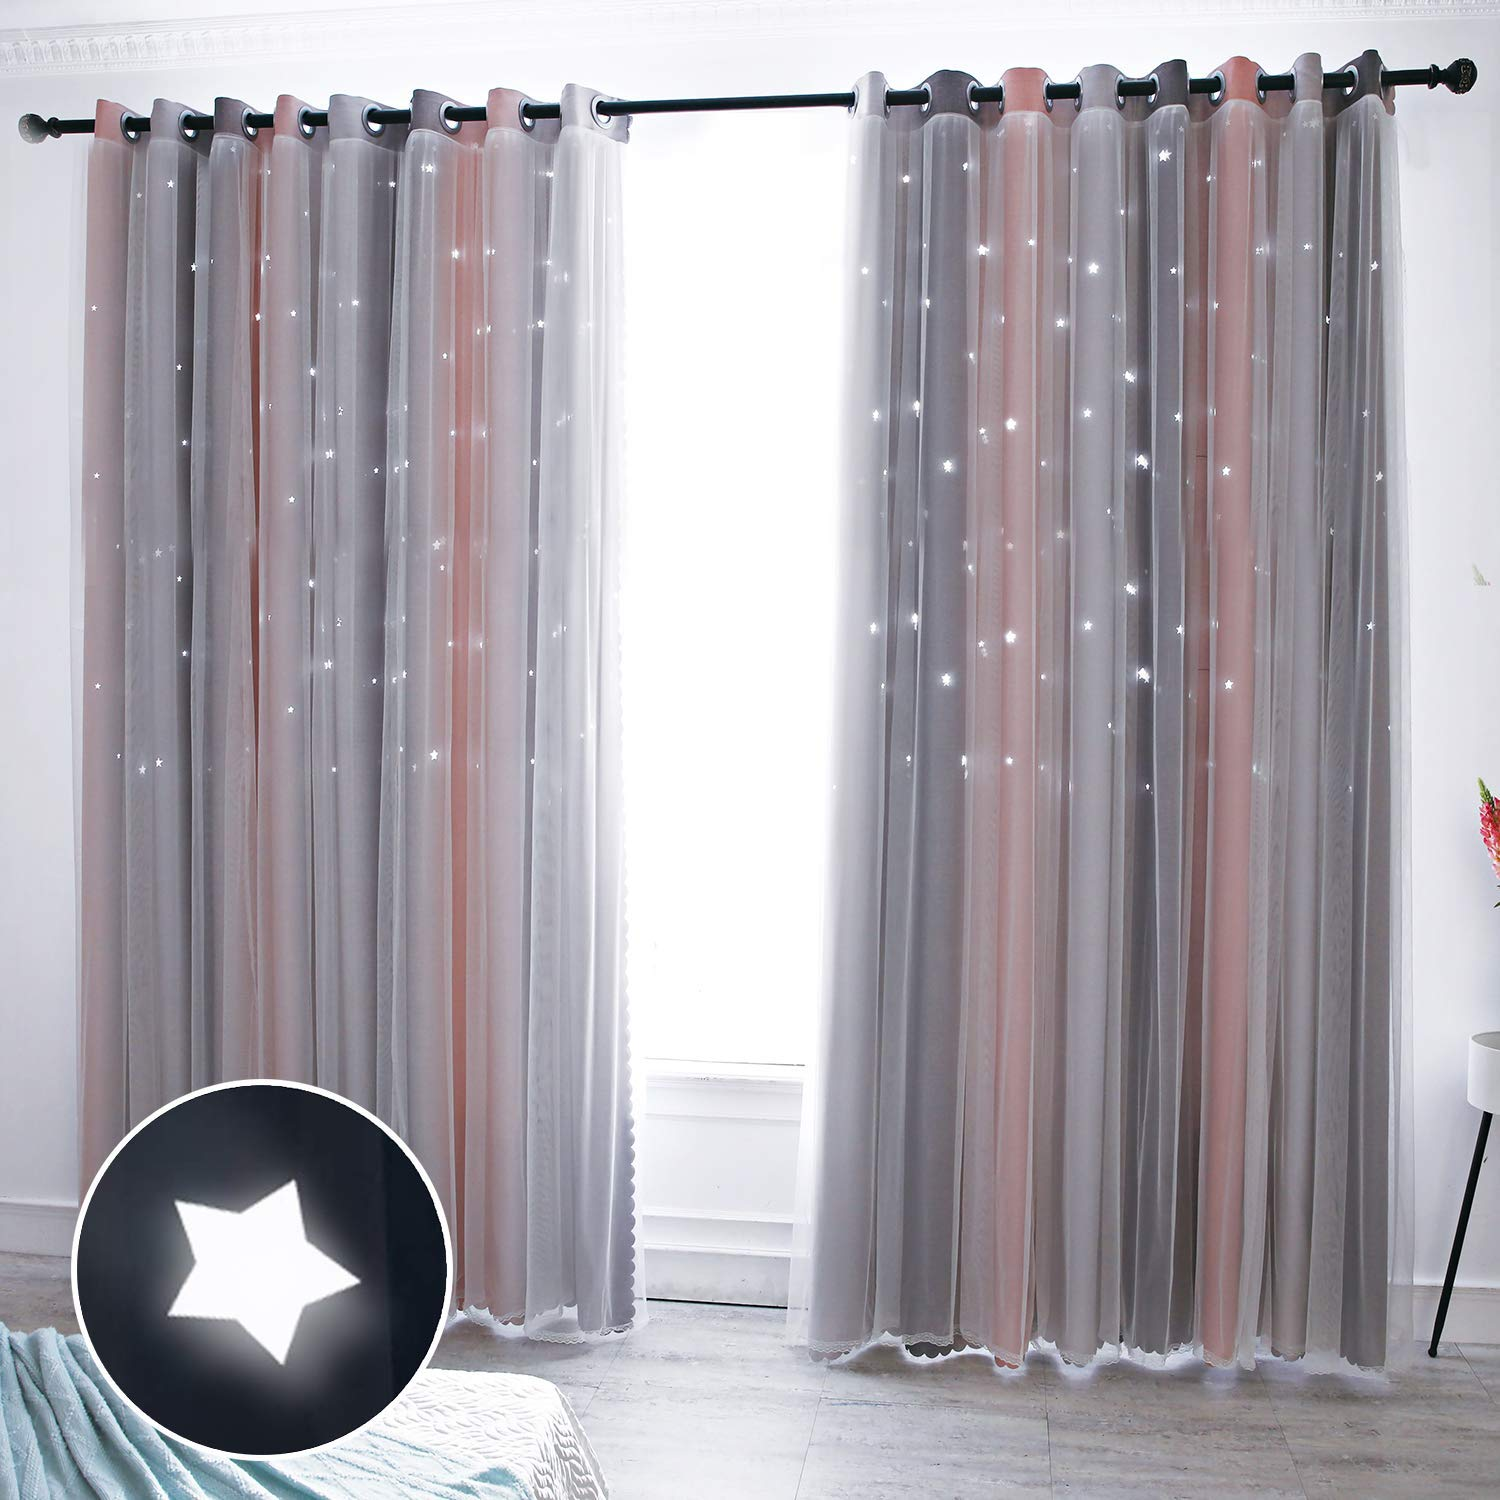 Stars Double-layer blackout curtain by Hughapy